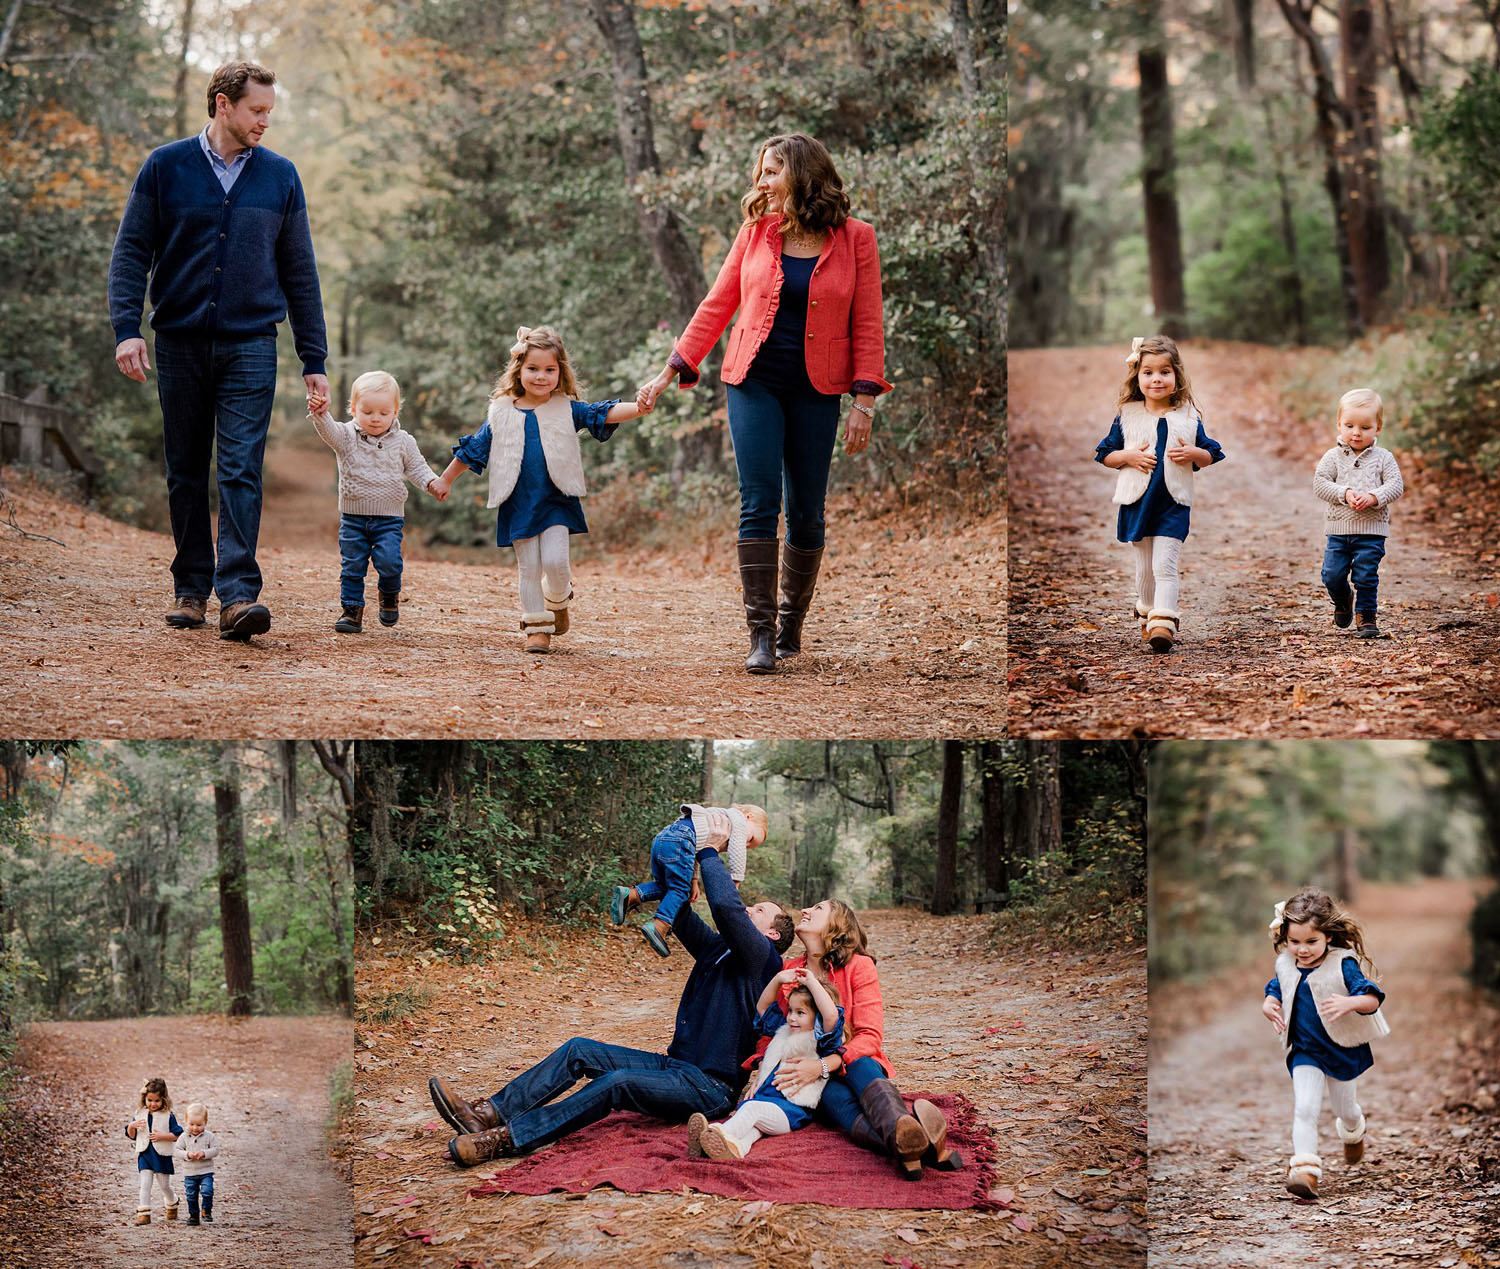 fun-family-lifestyle-photo-session-first-landing-va-beach-melissa-bliss-photography.jpg